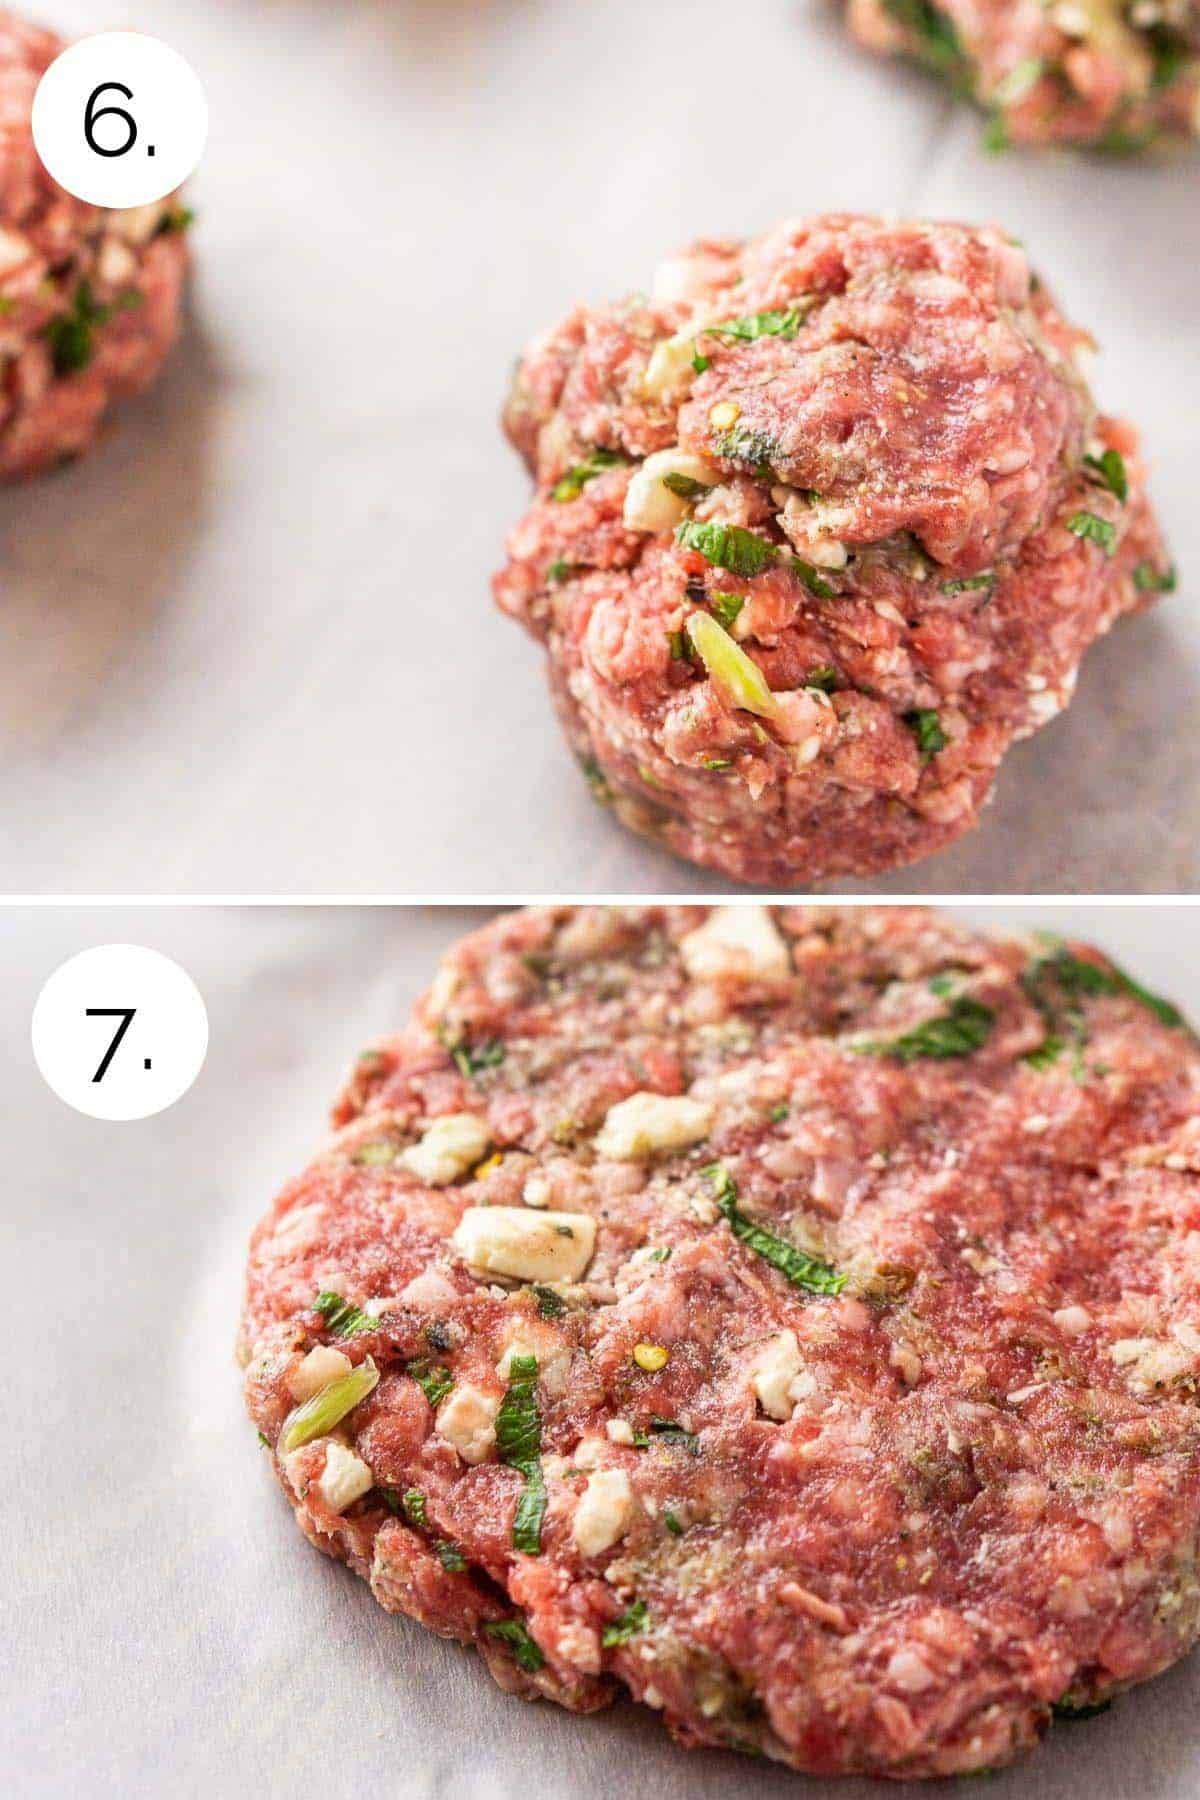 Shaping the ground meat into burger patties on parchment paper.